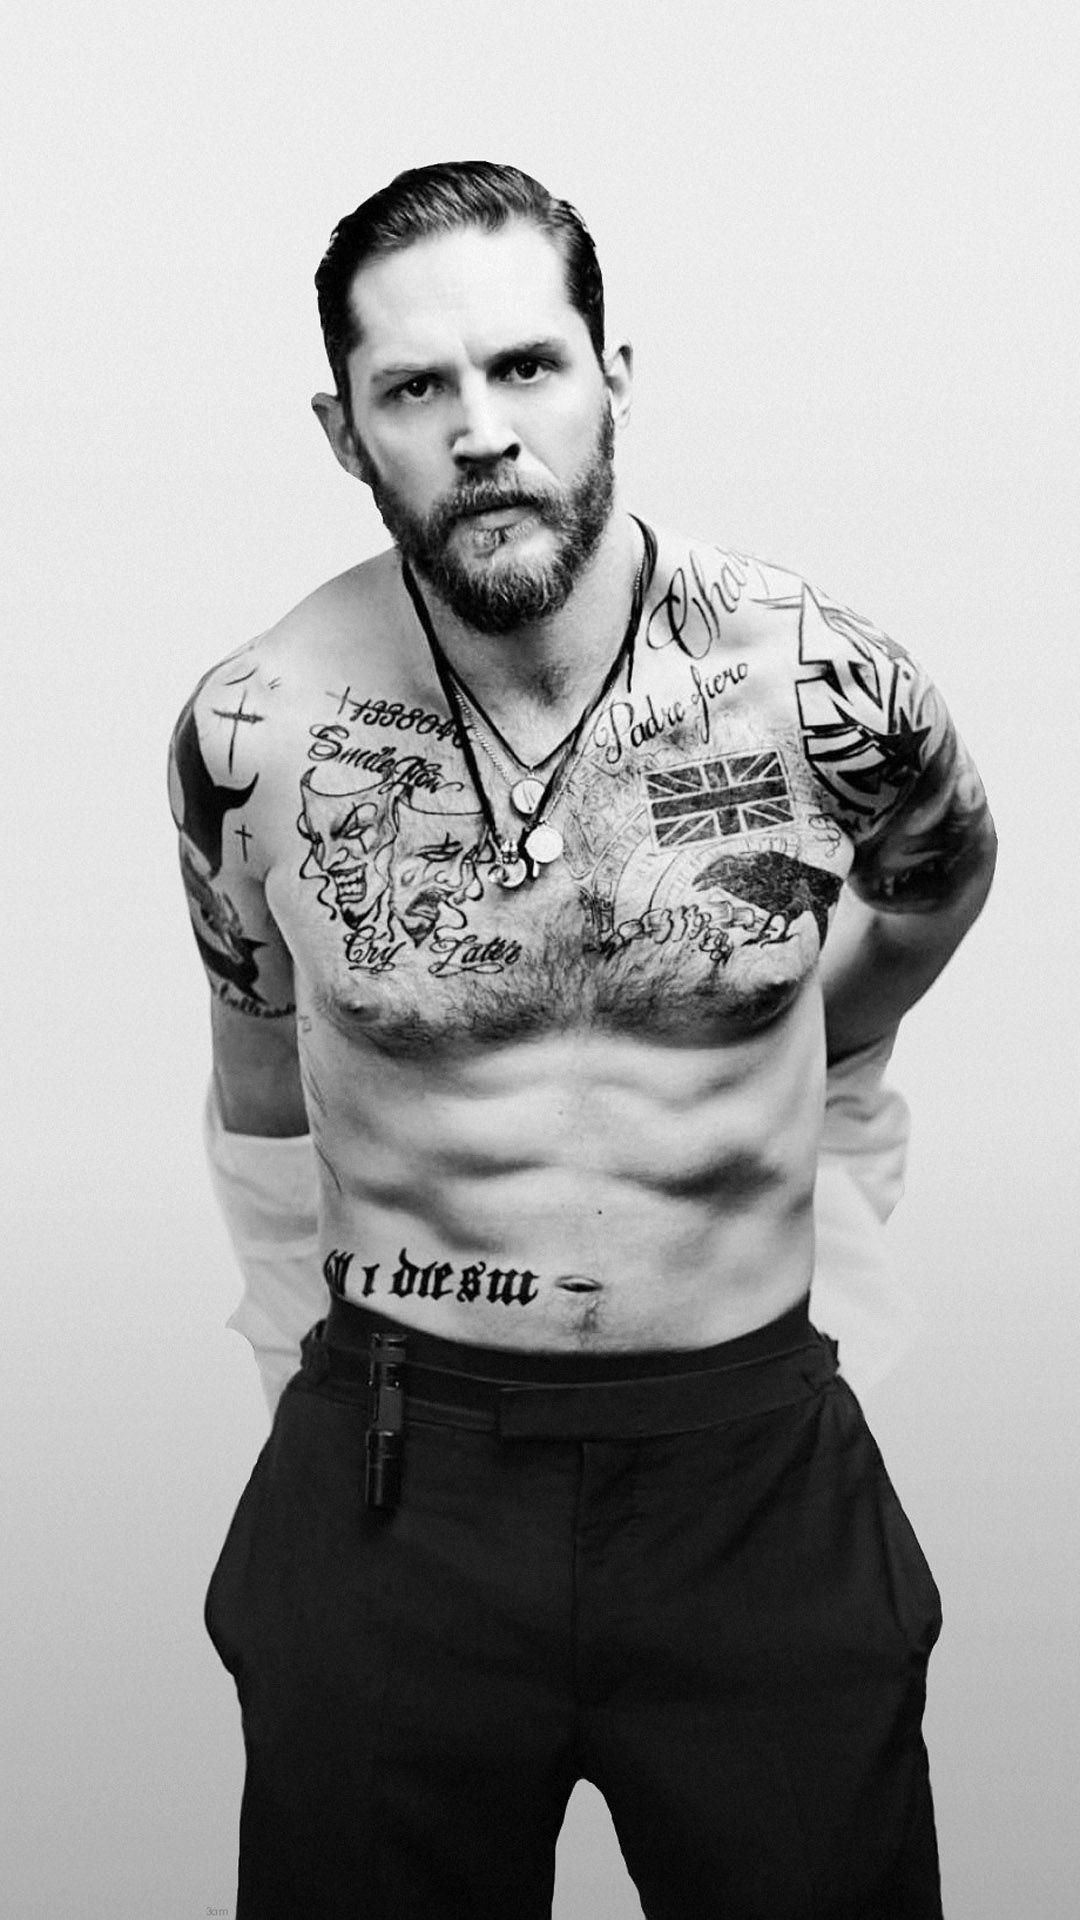 Tom Hardy Wallpapers for Iphone 7, Iphone 7 plus, Iphone 6 plus